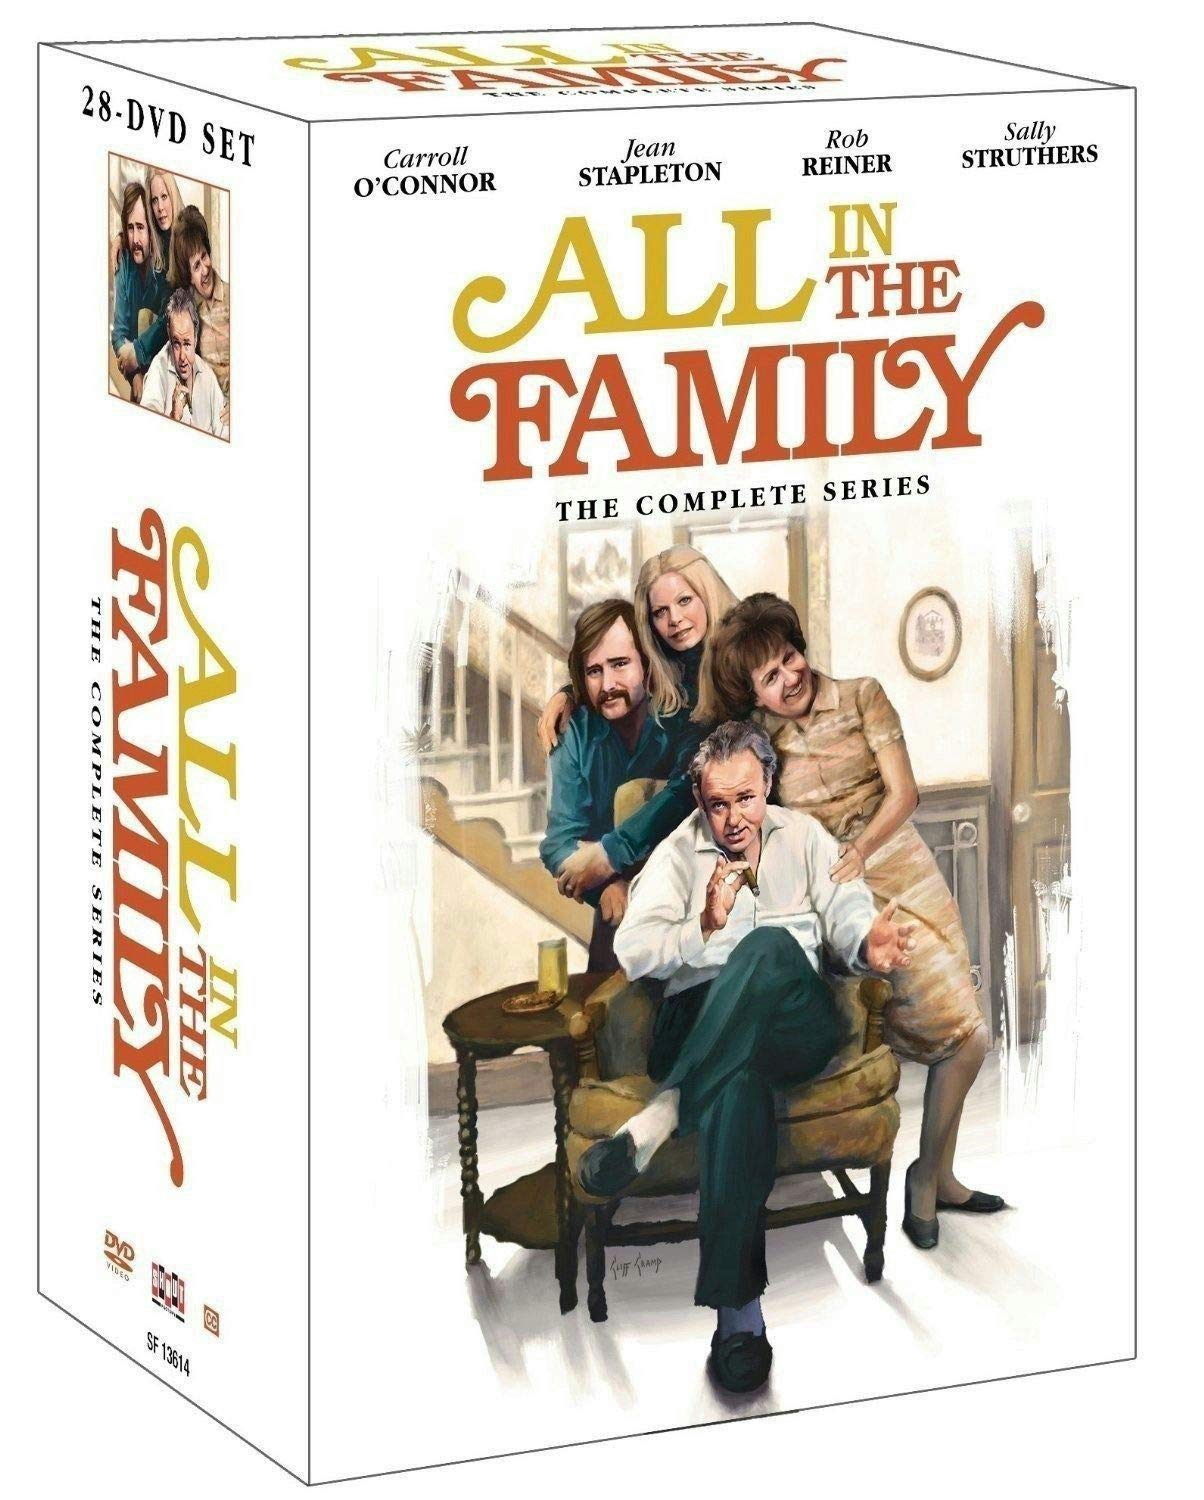 All in The Family The Complete DVD Series Seasons 1-9 DVD New by Brand new (Image #1)